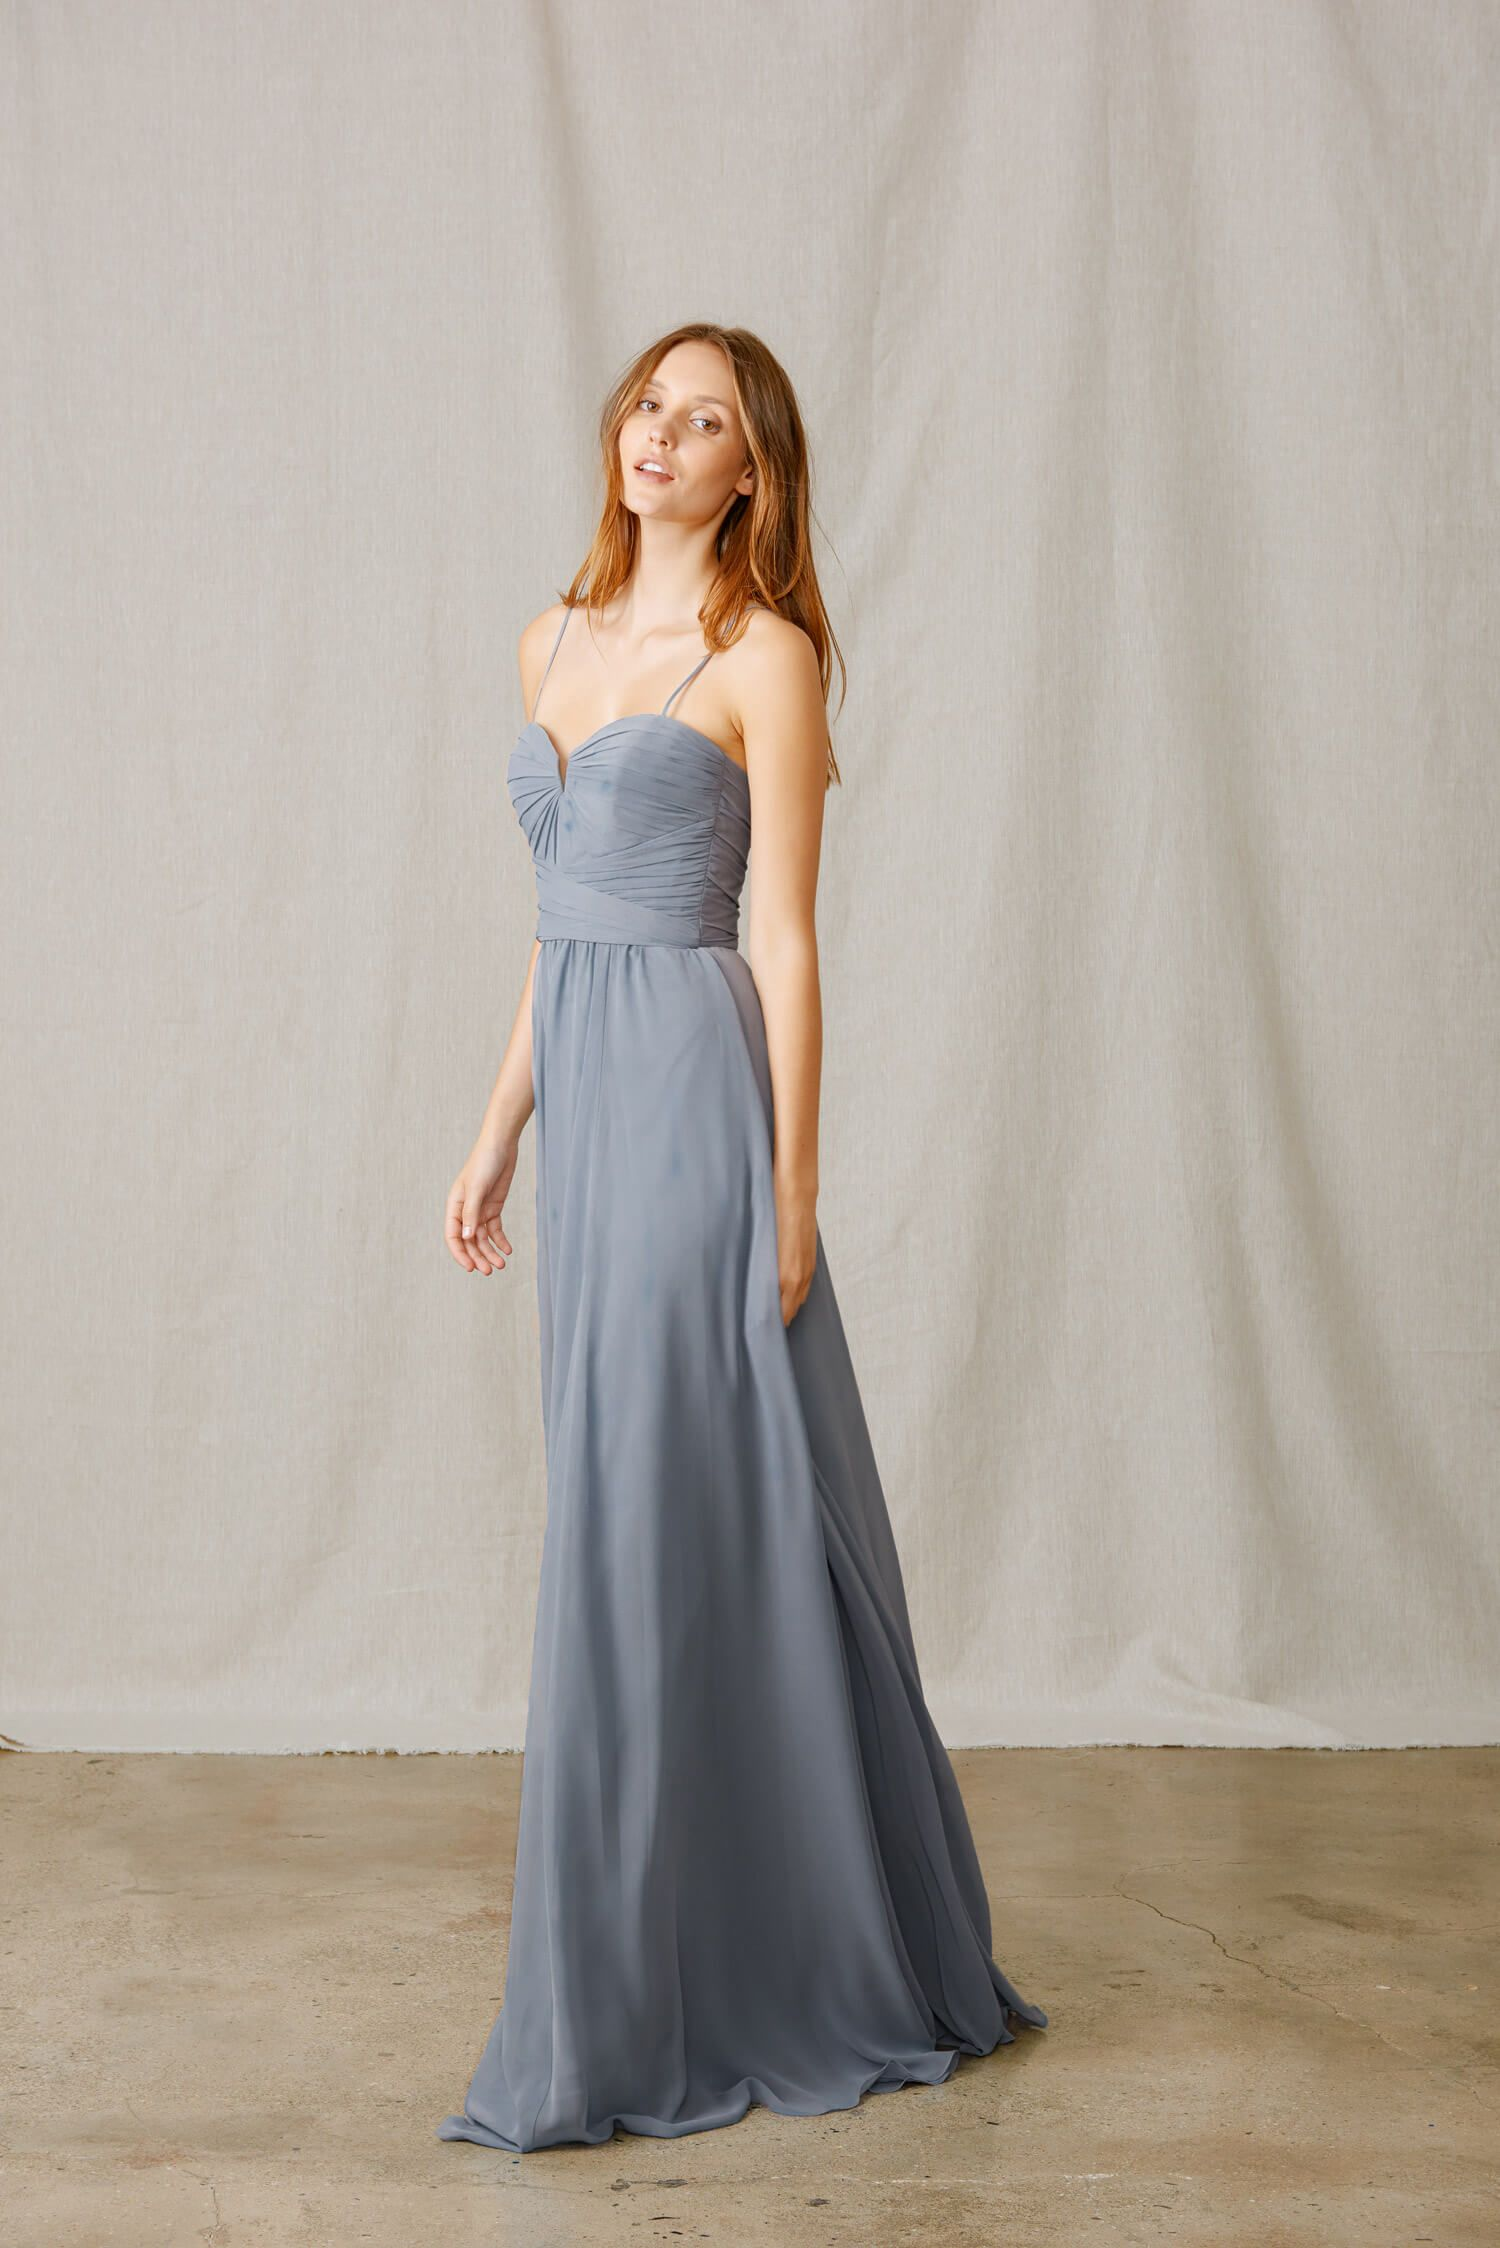 09486d522be Amsale  260.00 Bella Bridesmaids Exclusive style. Spaghetti strap Flat  Chiffon gown with notched V neckline. Wraps at the waist with long flowy  skirt.